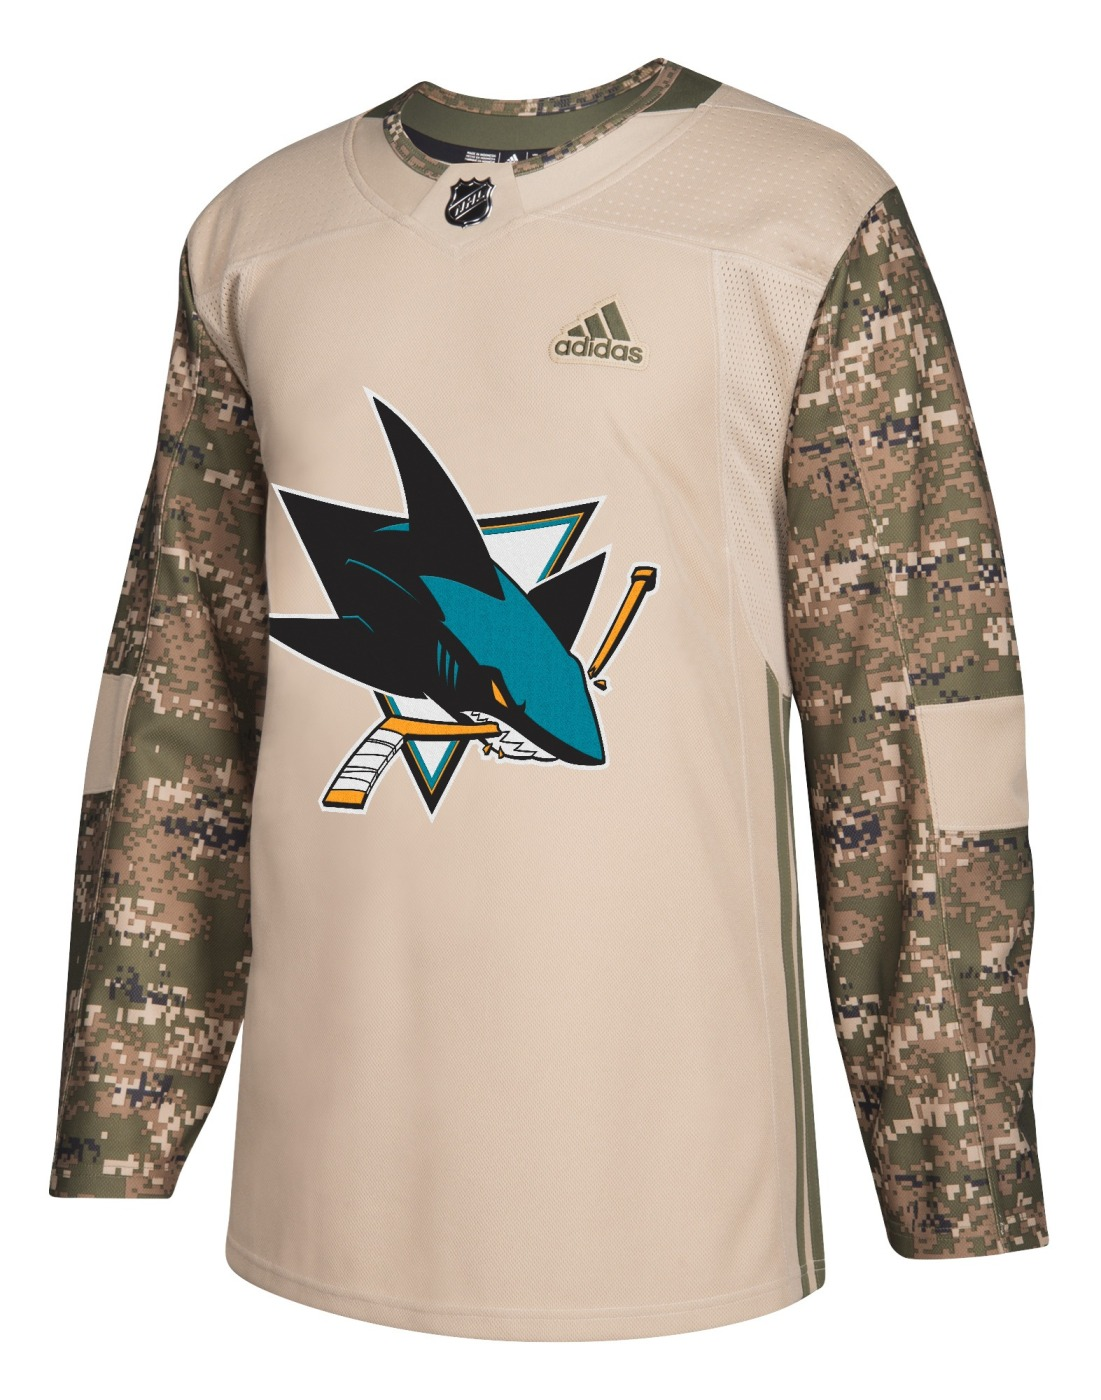 San Jose Sharks Adidas NHL Edge Camouflage Pre-Game Authentic Warm Up Jersey